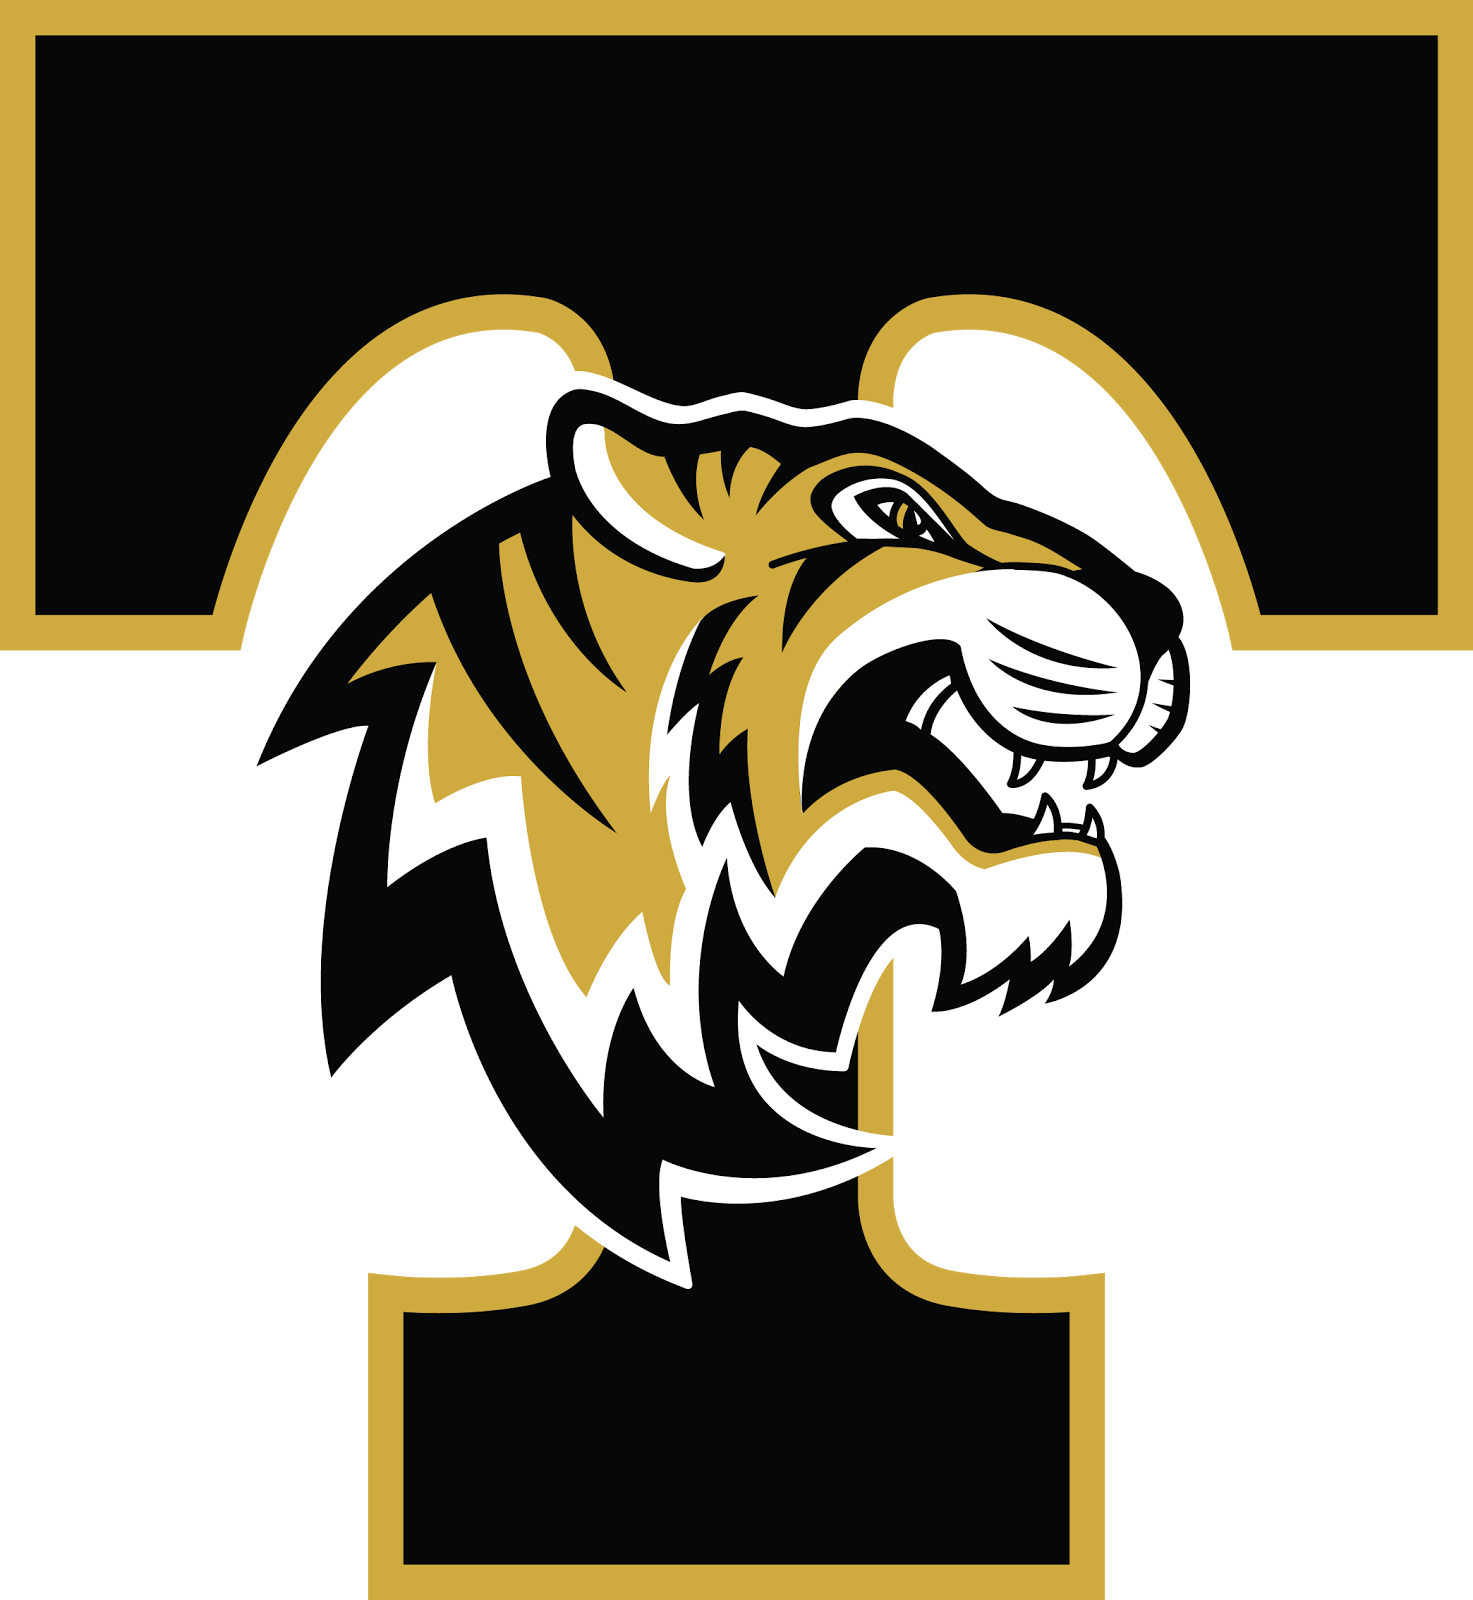 Tiger_logoSimplified.png